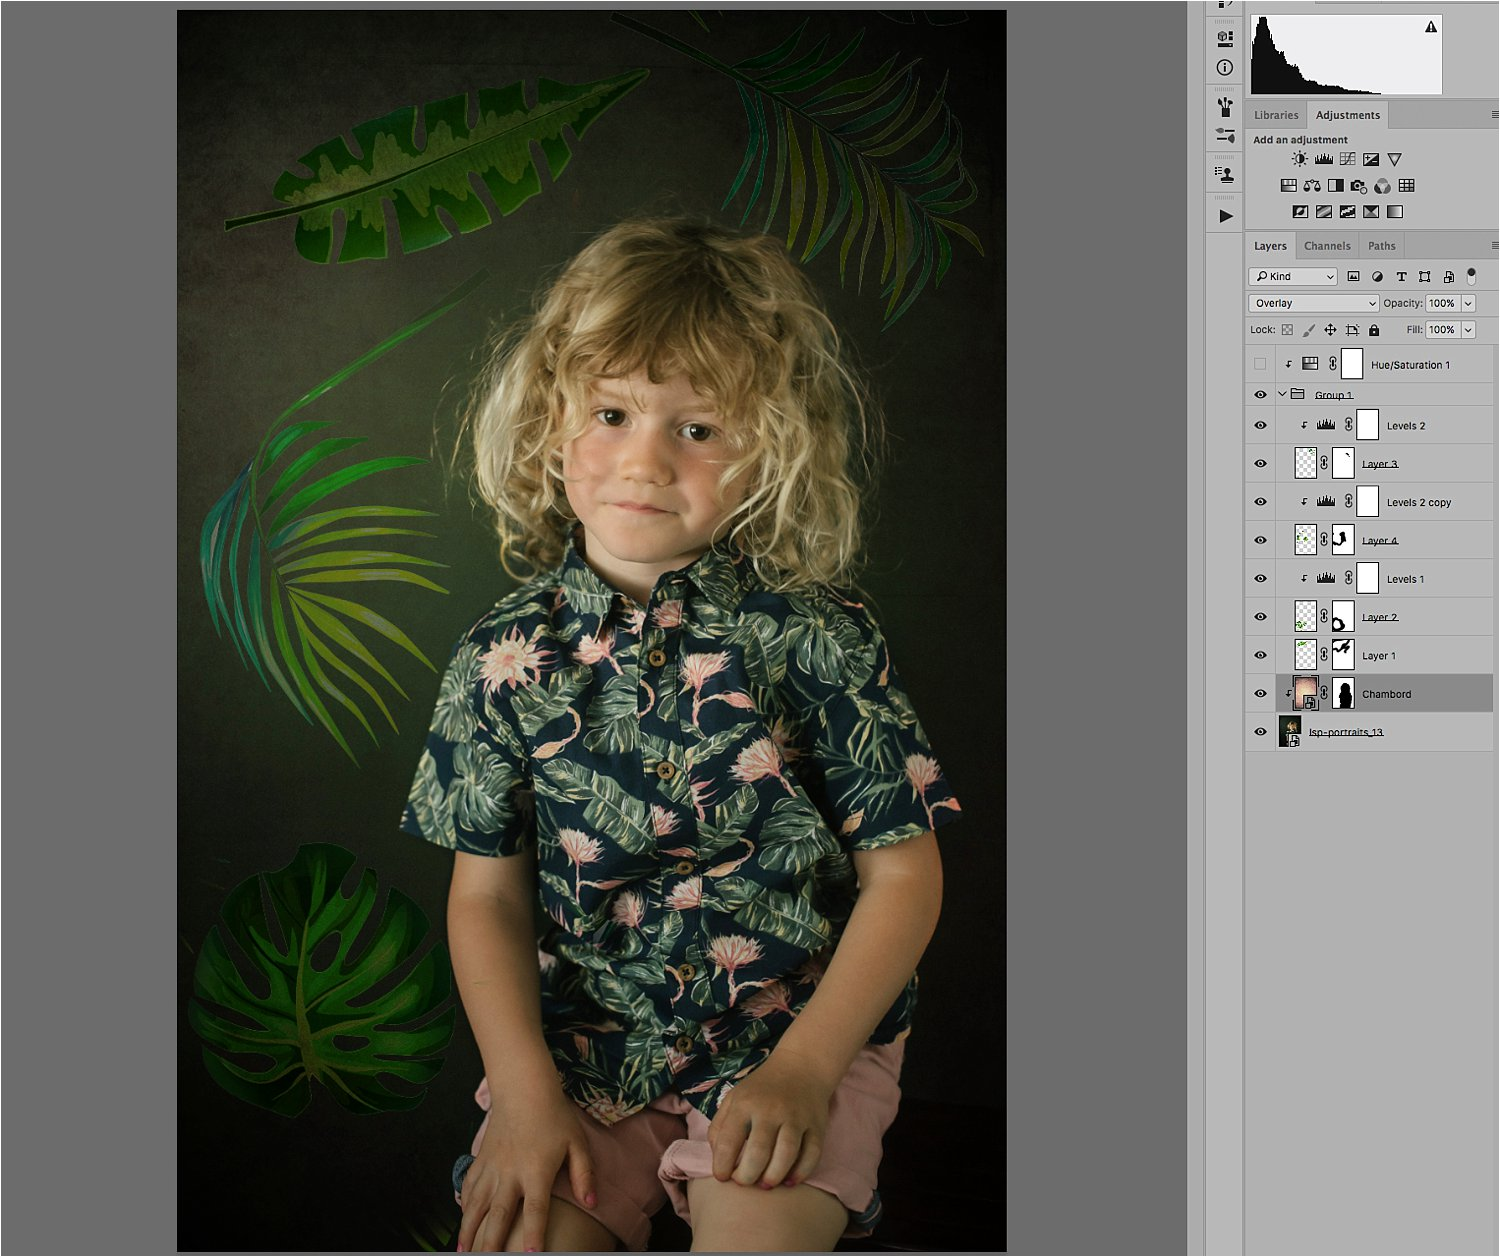 Basic Photoshop Tutorial - How to Add a Texture Overlay to Your Portraits